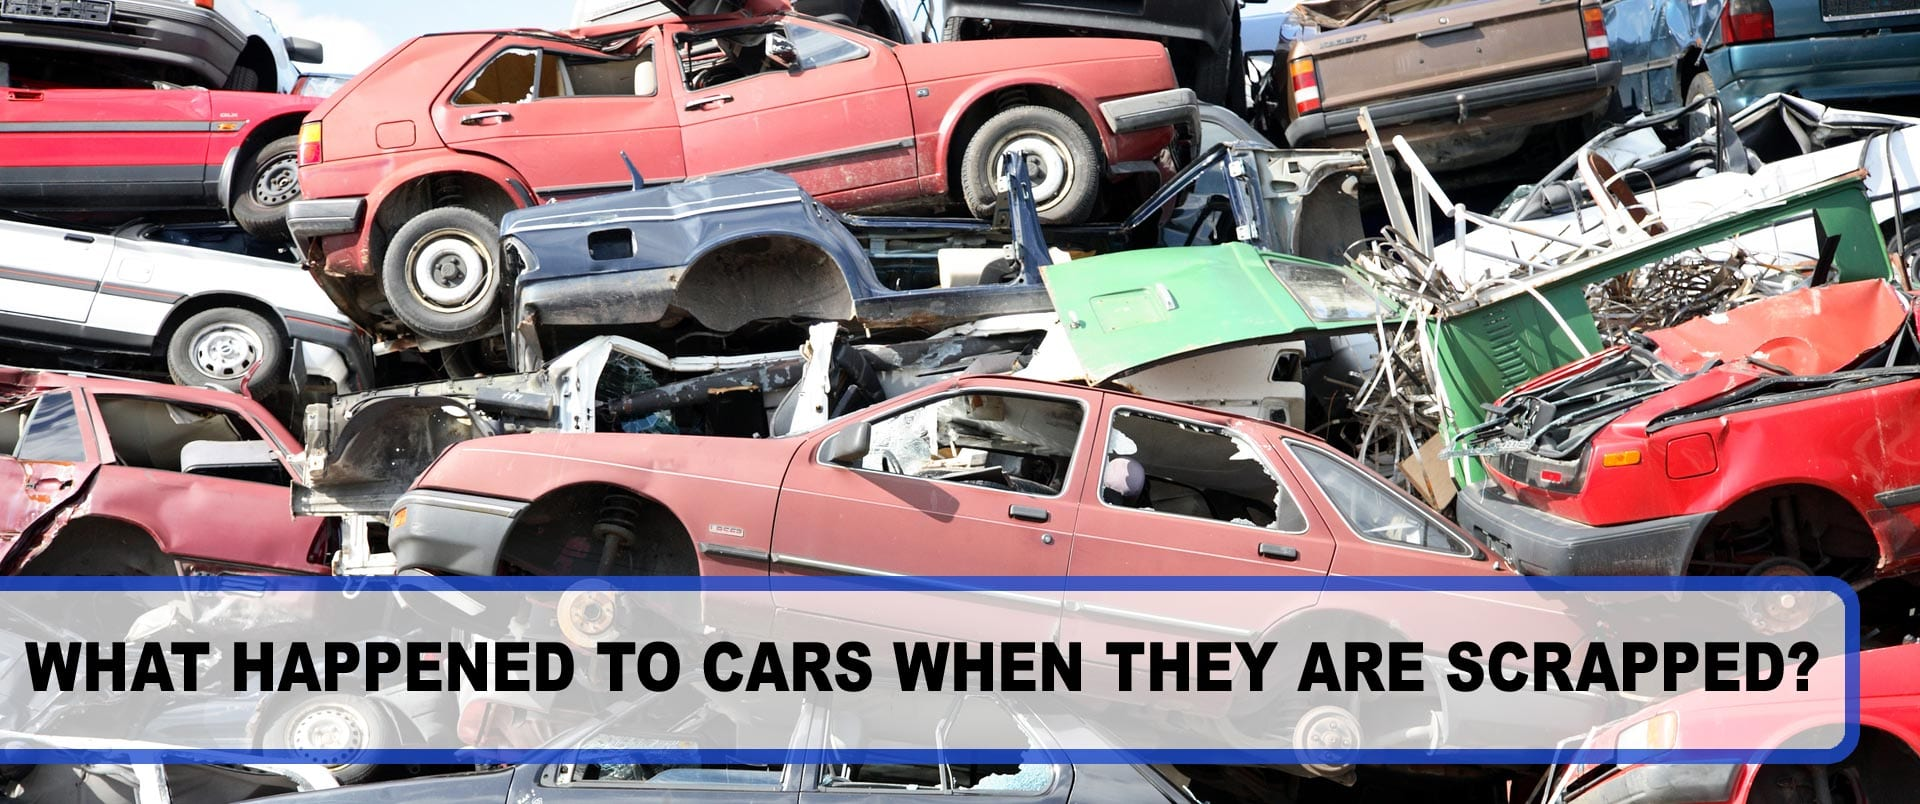 What Happened to Cars When They are Scrapped?